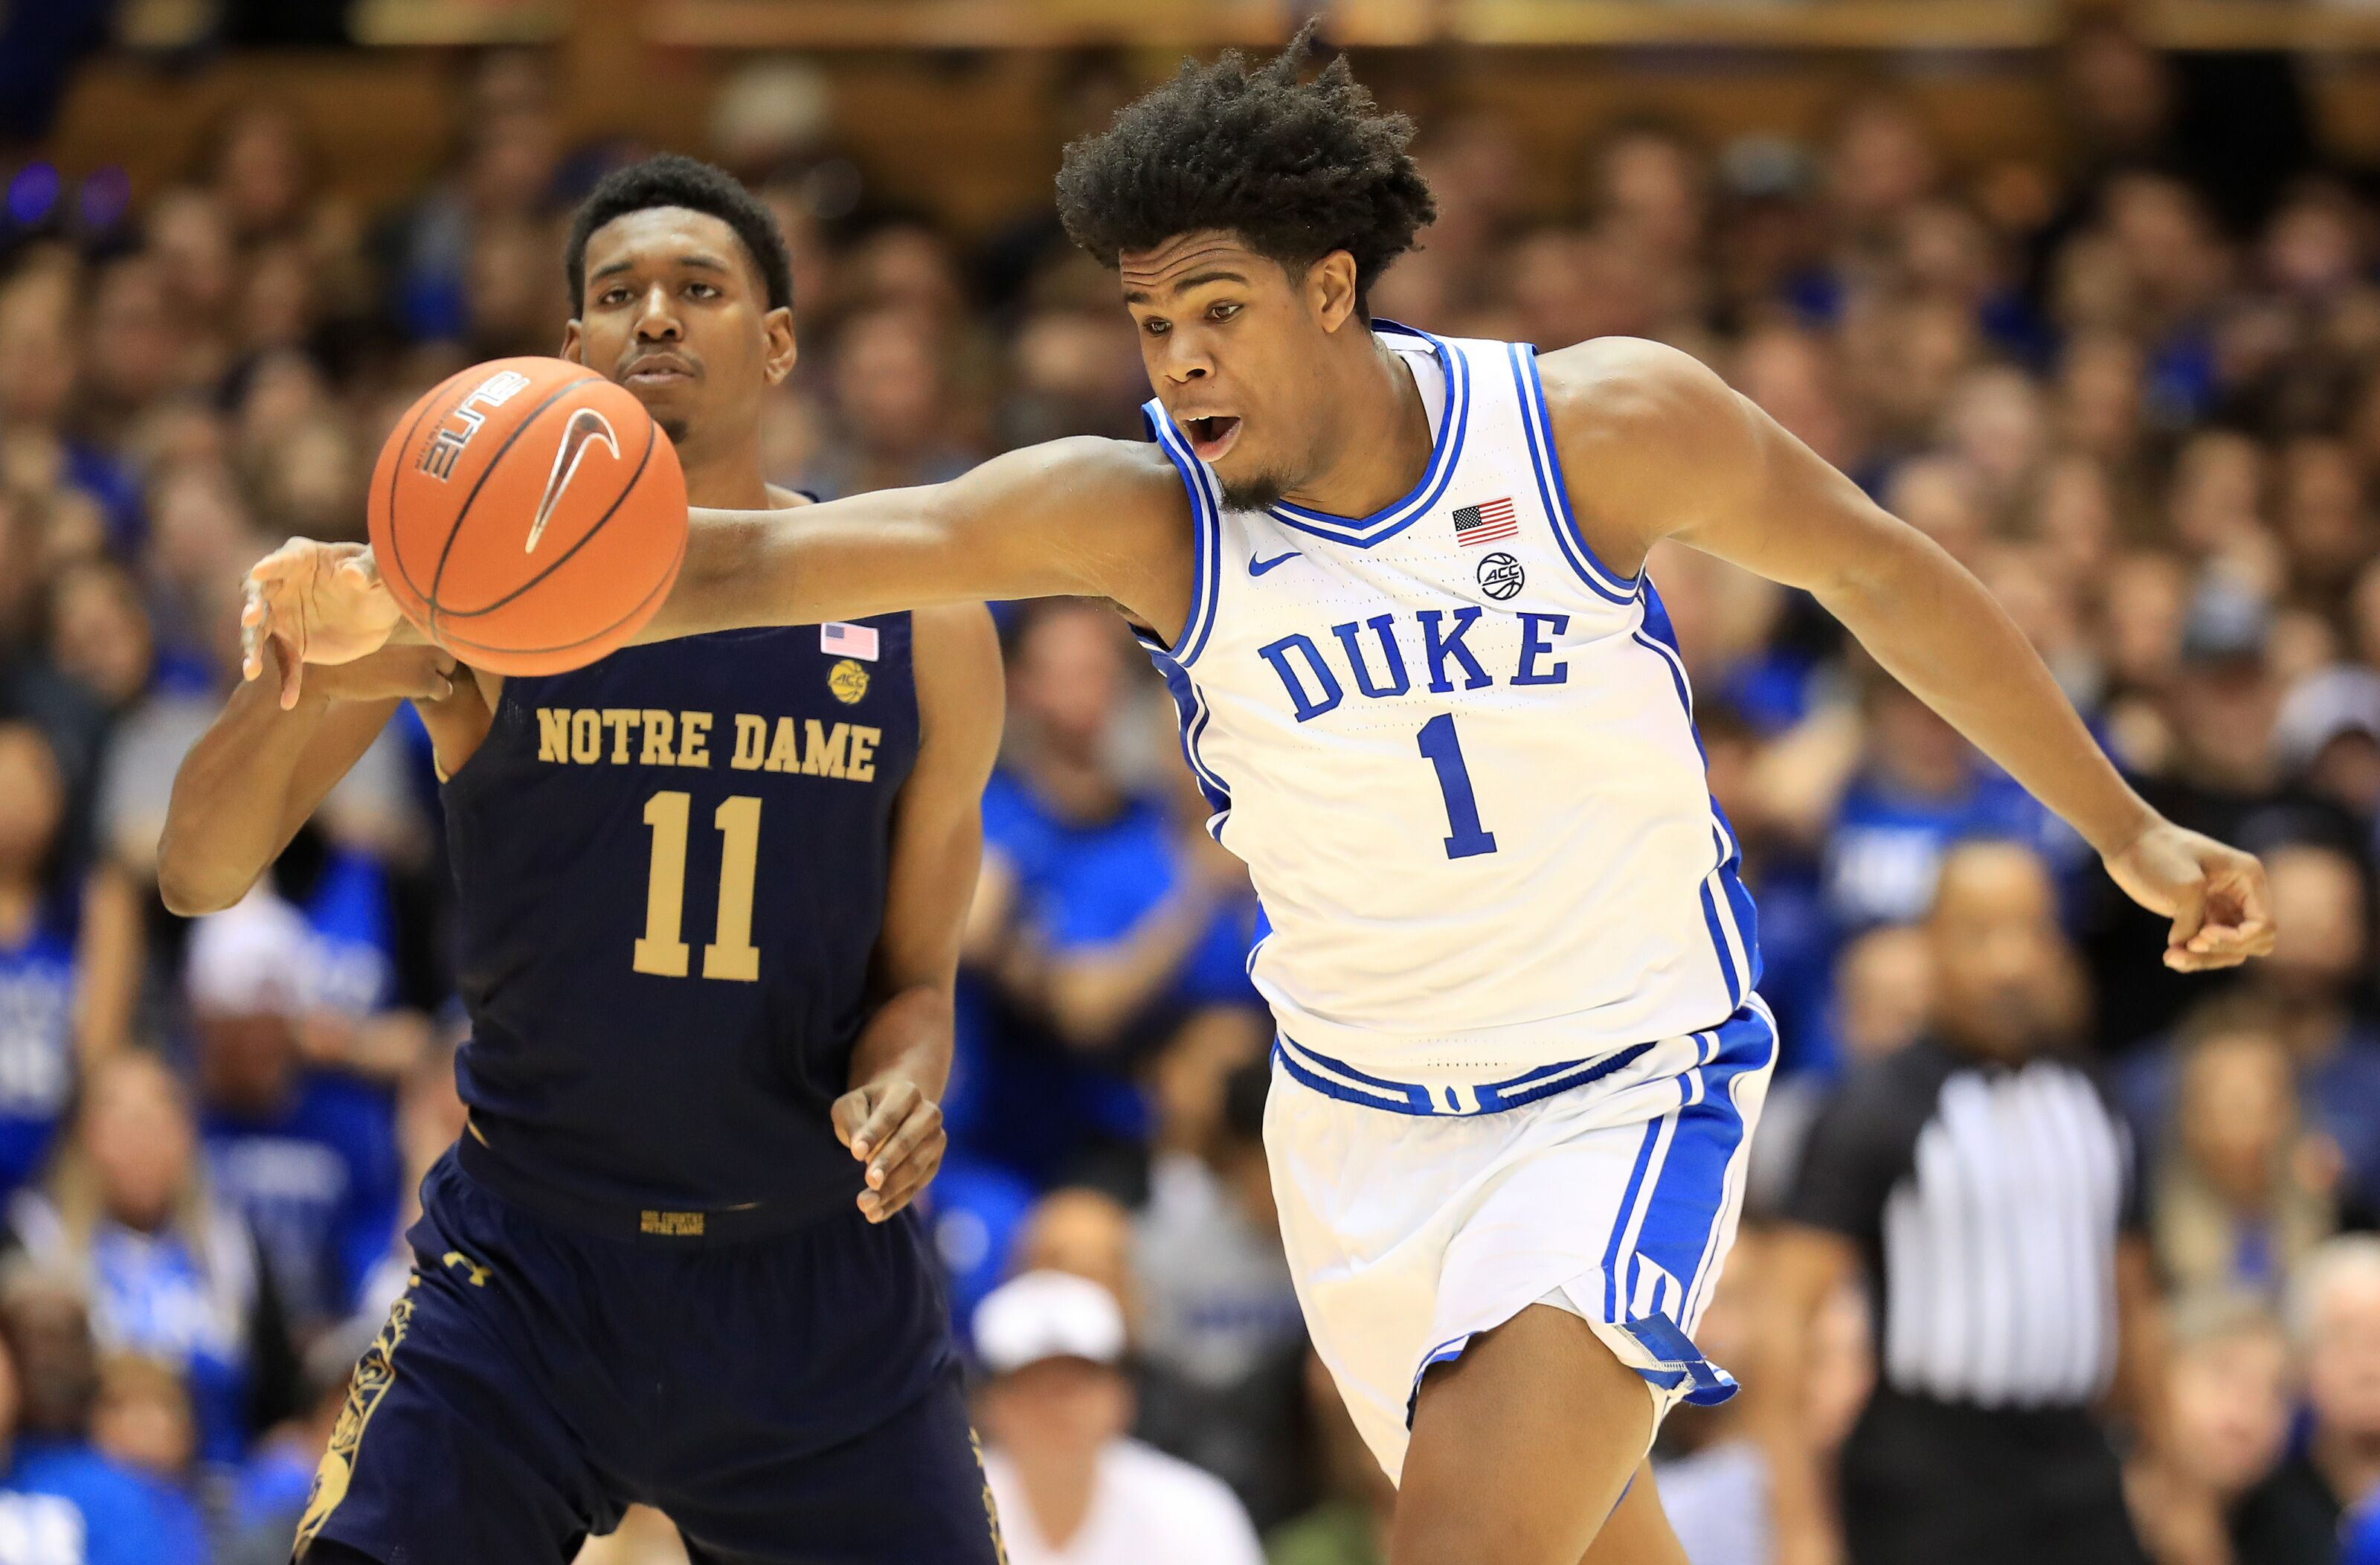 Notre Dame MBB: The fallout from the blowout loss to Duke